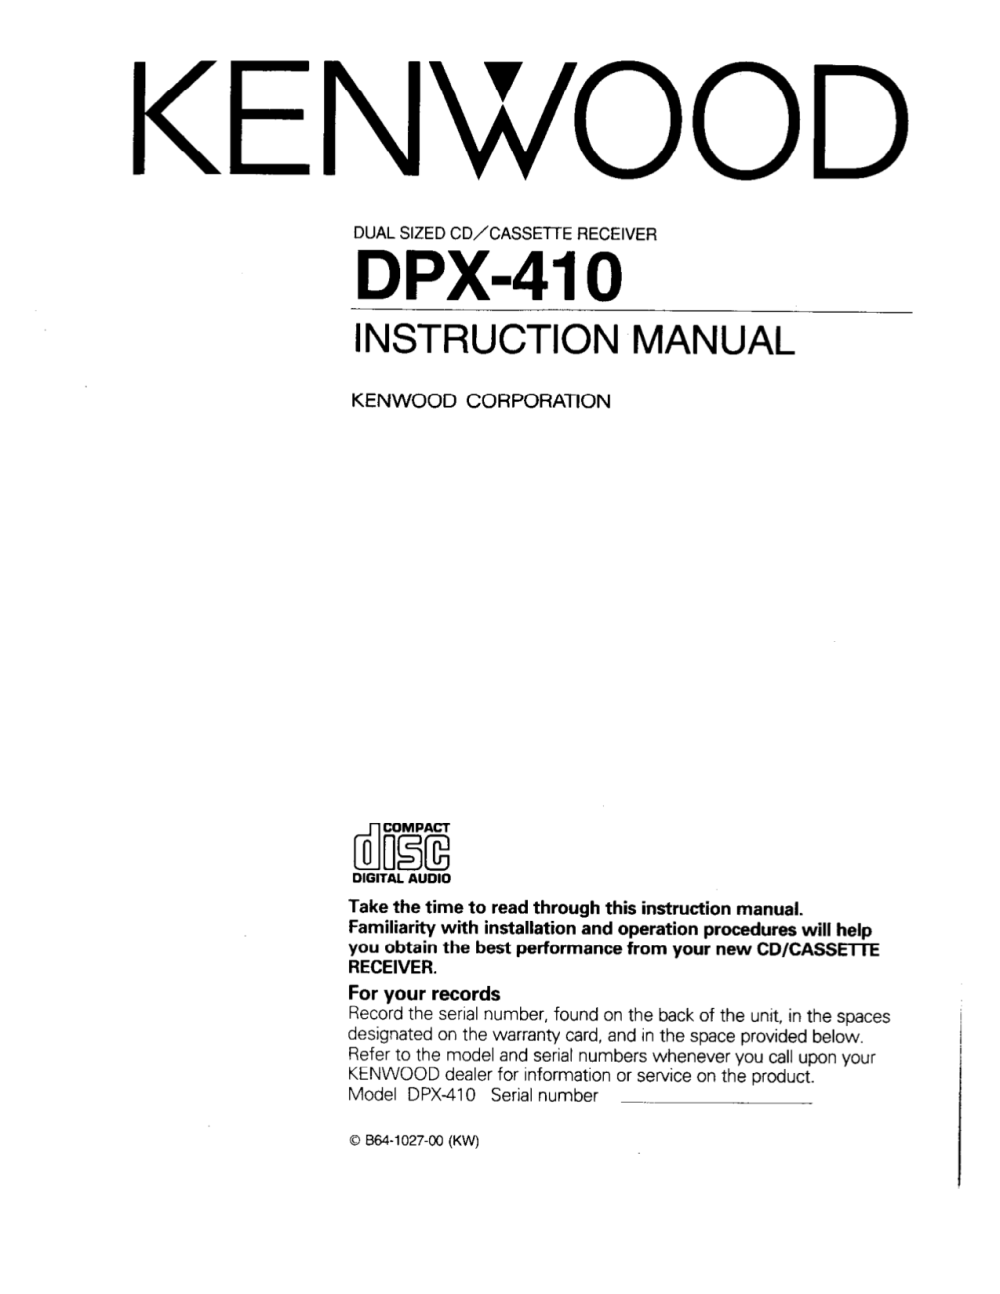 medium resolution of pdf for kenwood car receiver dpx 410 manual